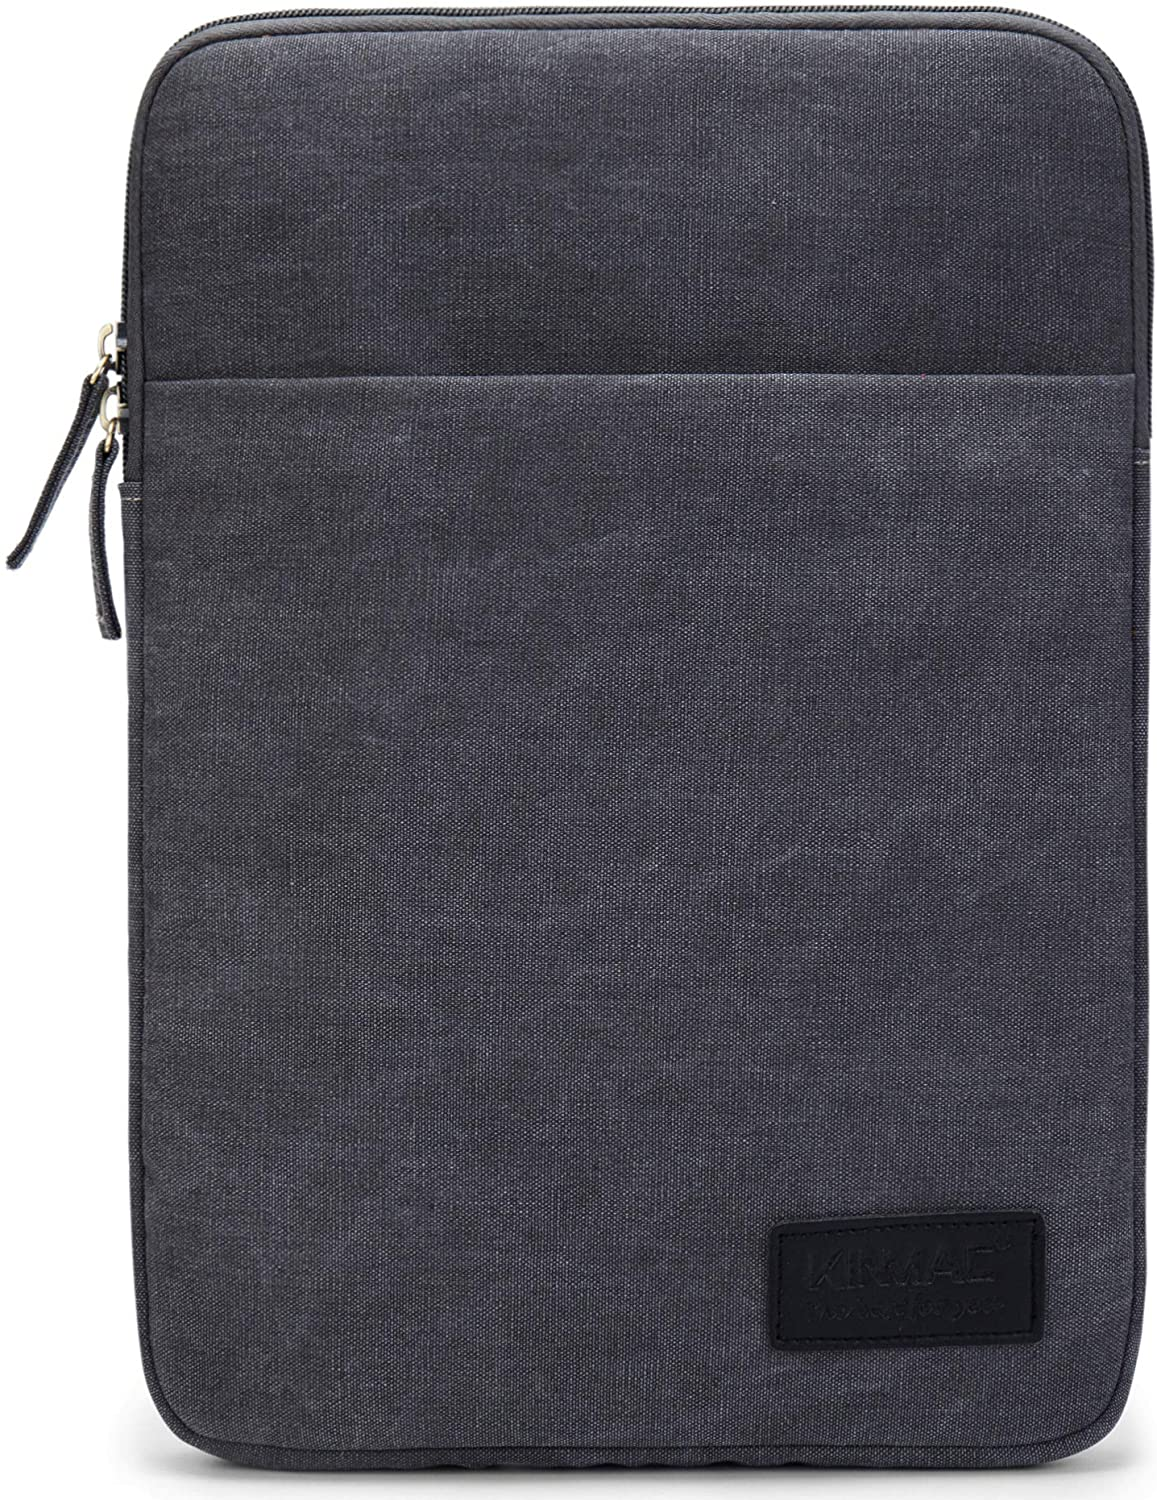 Kinmac Grey Color 360 Degree Protective Canvas Vertical Waterproof Laptop Sleeve with Pocket for MacBook Pro 16 and 14 Inch Laptop